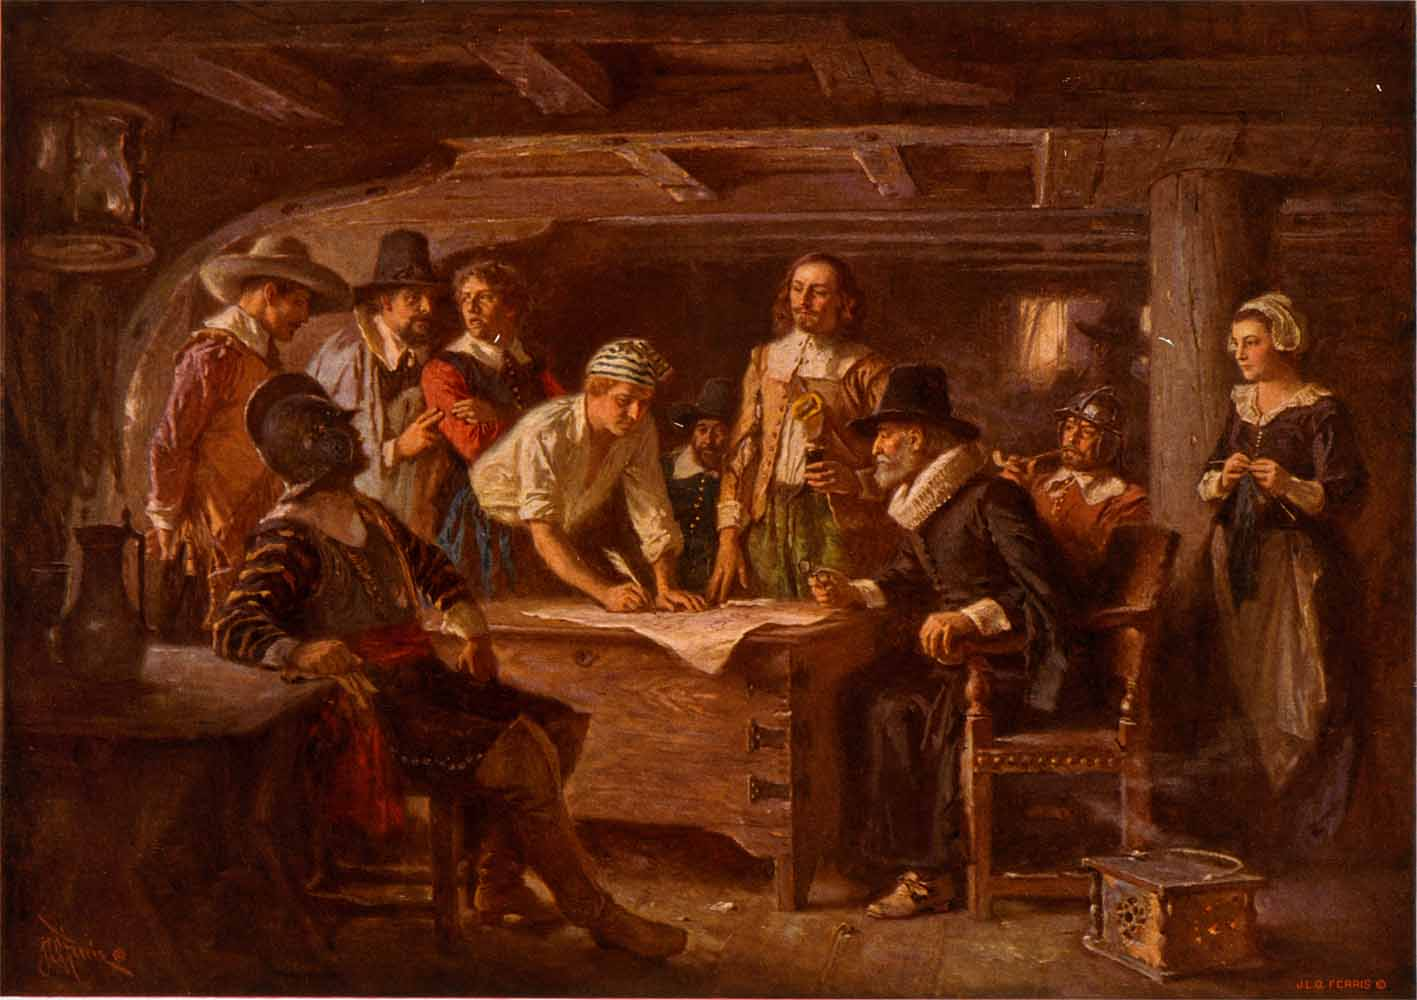 a history of the puritan society in the united states The history of the united states is what happened in the past in the united states,  the pilgrims and the puritans were interested in making a better society, not looking for gold.